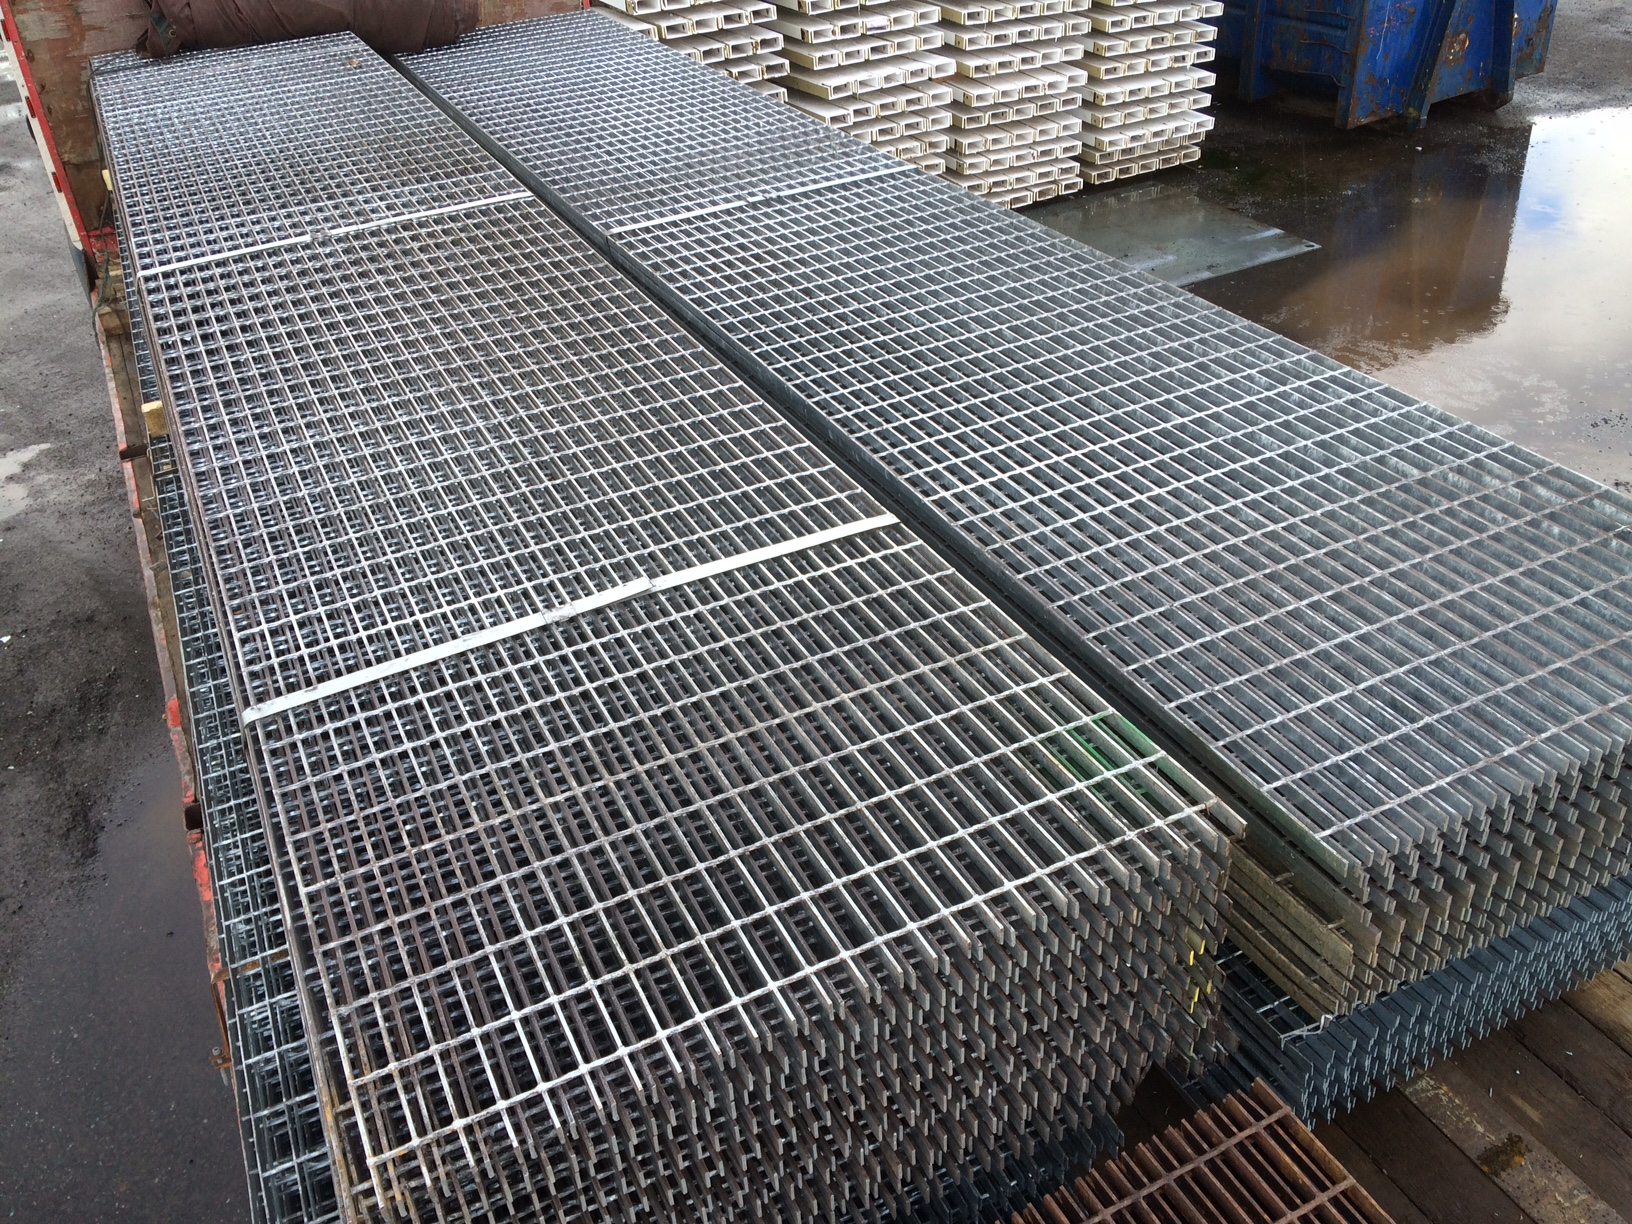 Floor Forge Walkway Galvanised Steel Grating 6 000mtr X 1